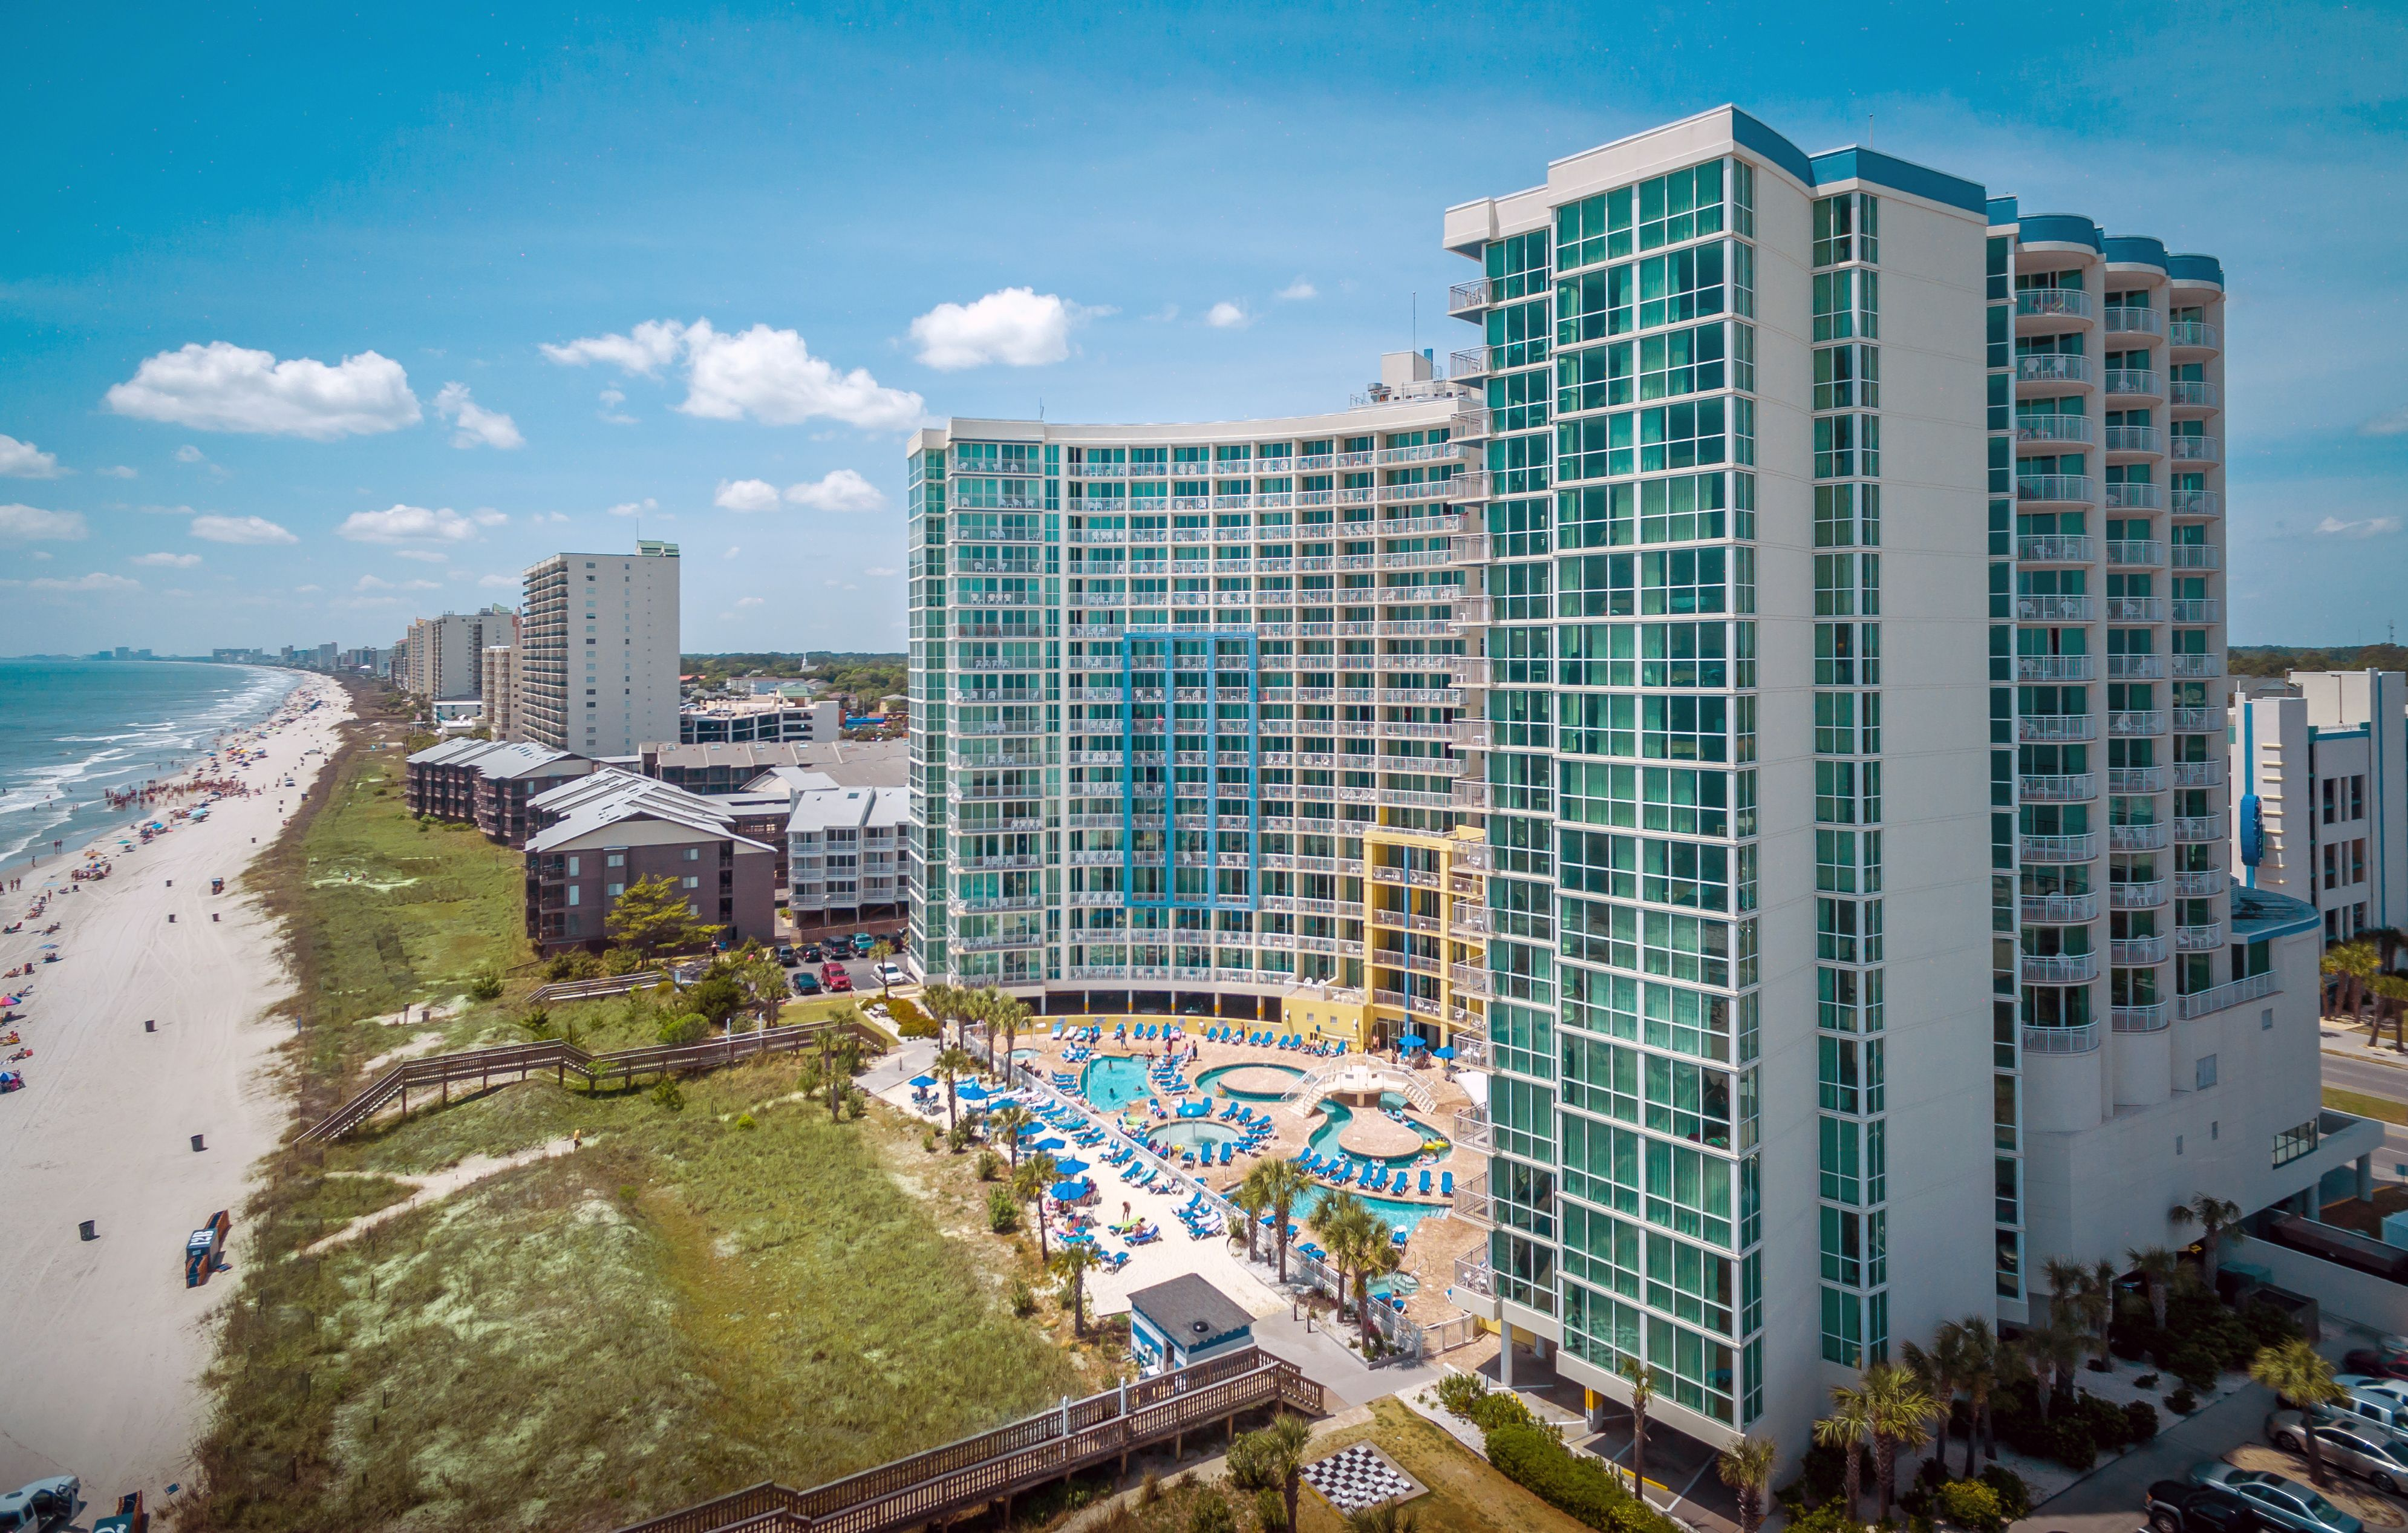 Such a Beautiful view of the Avista Resort in North Myrtle